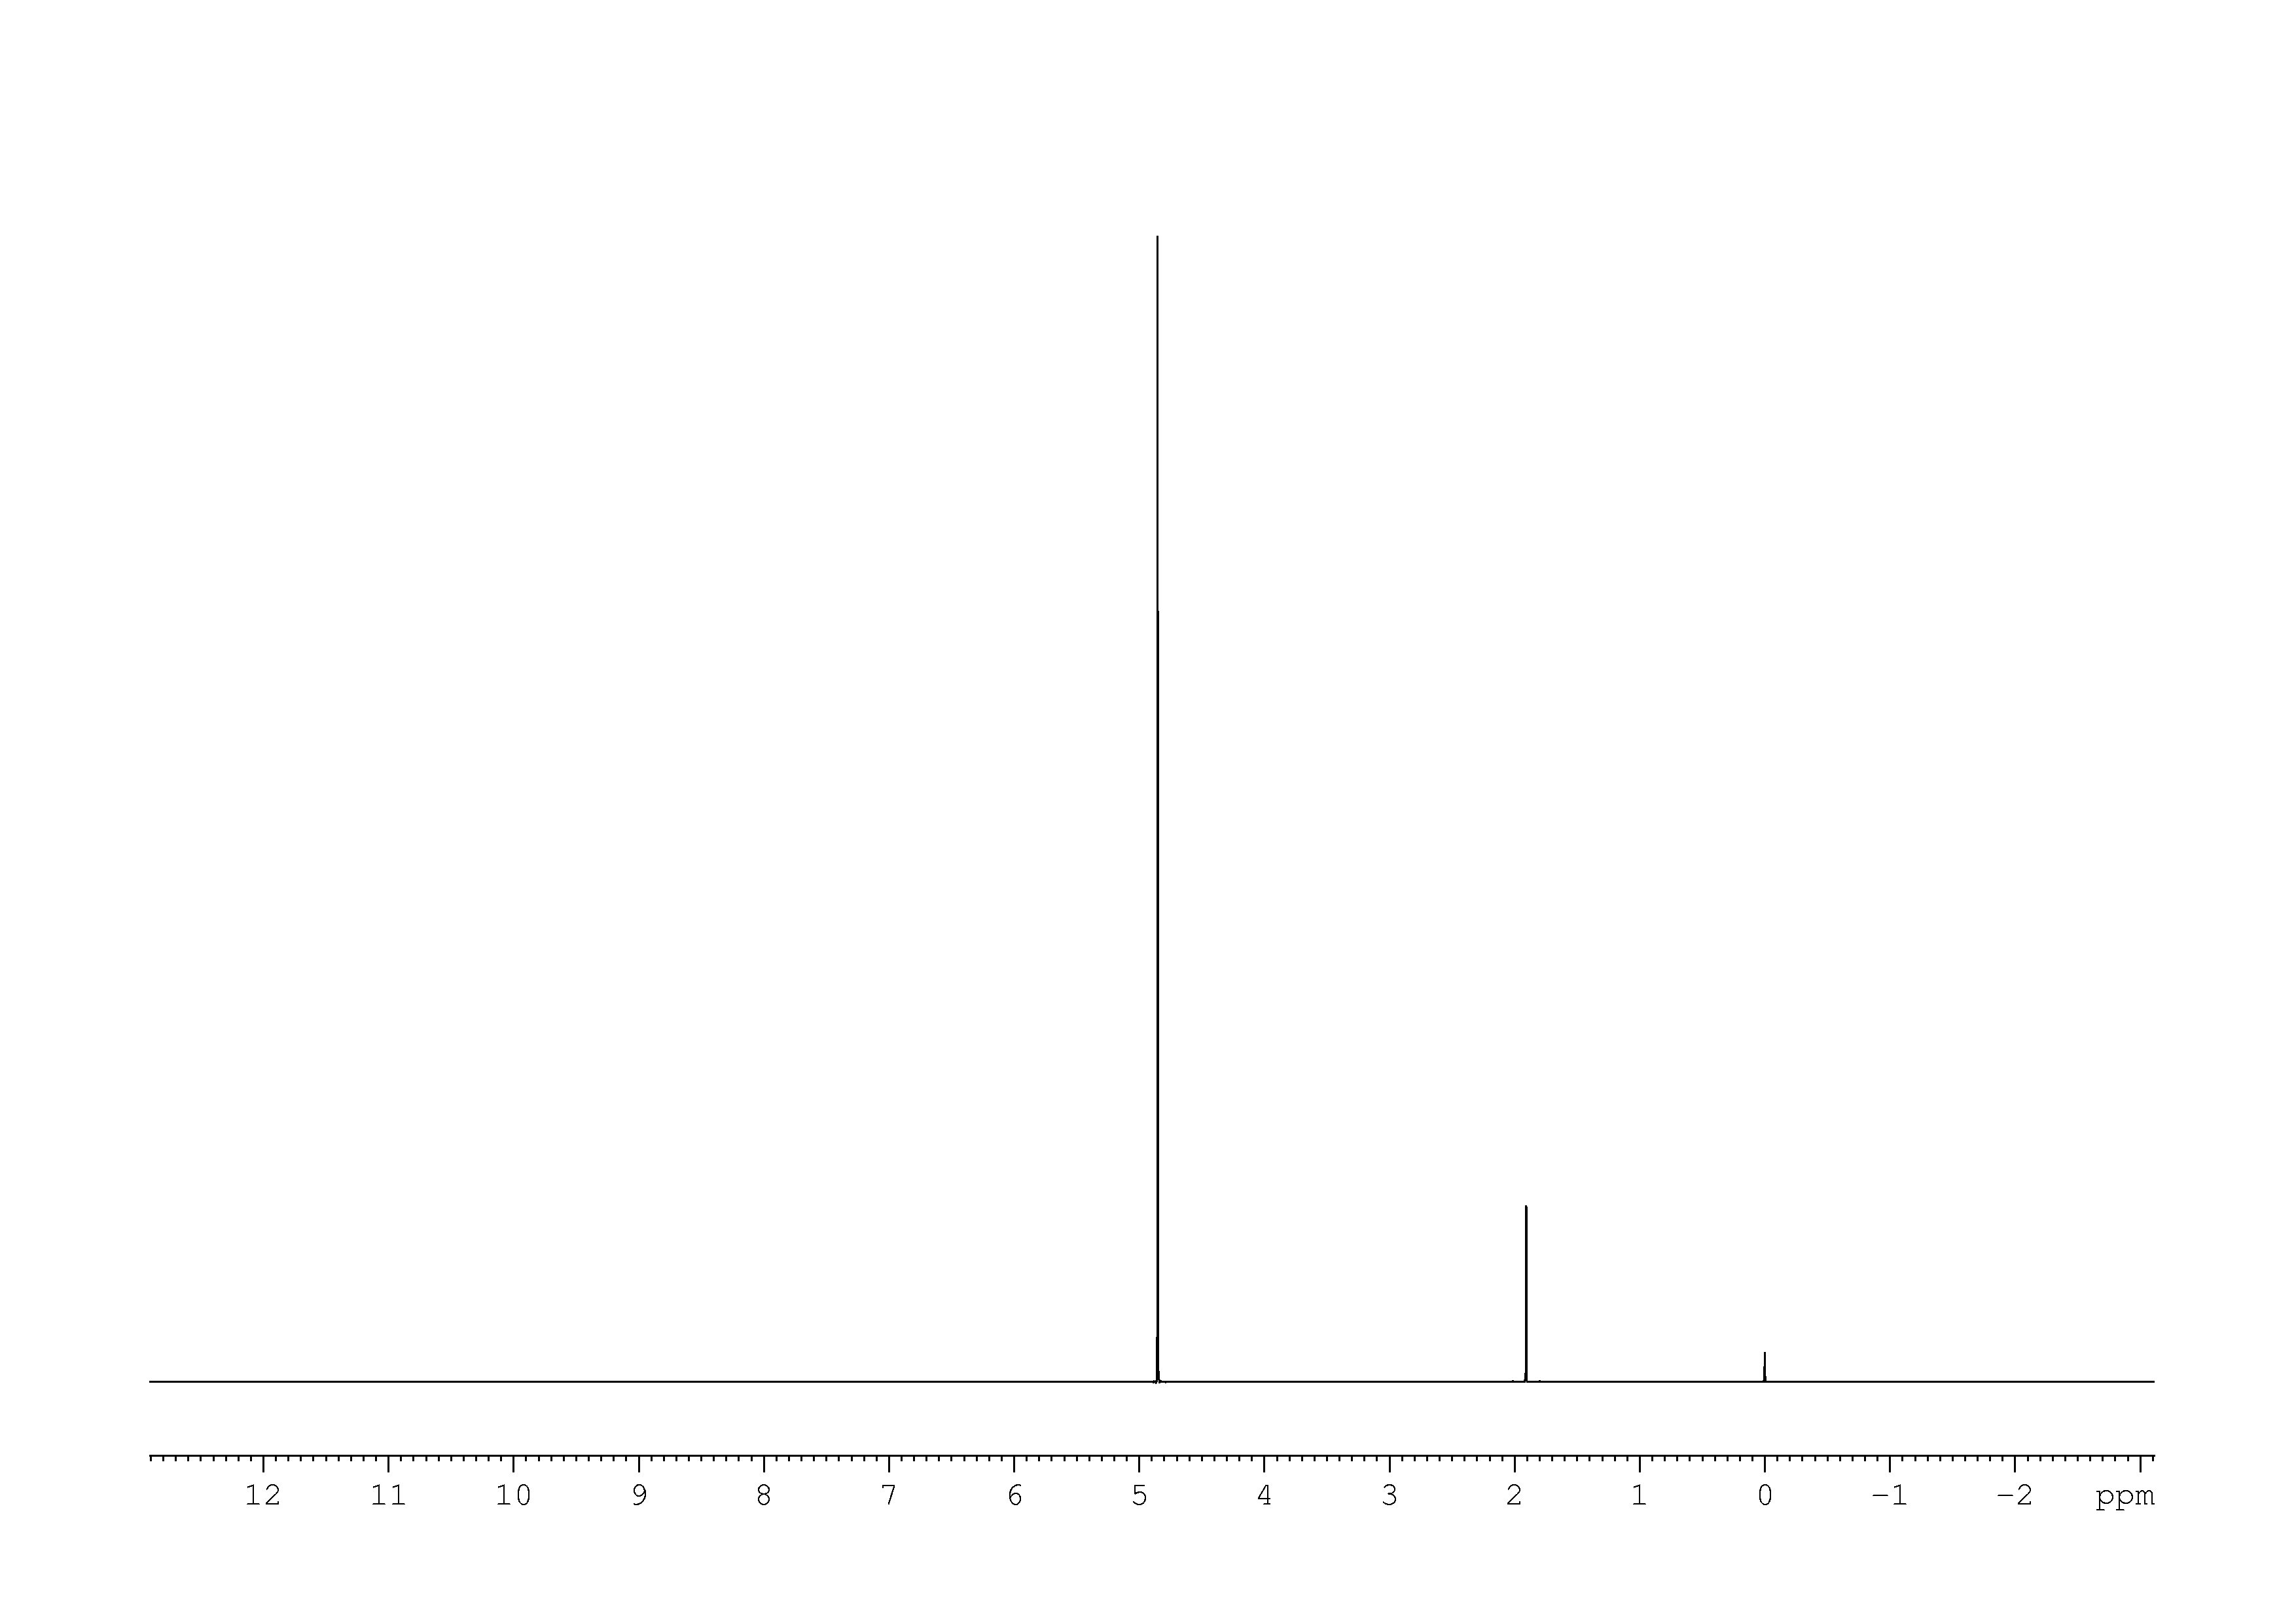 Array spectrum for 1